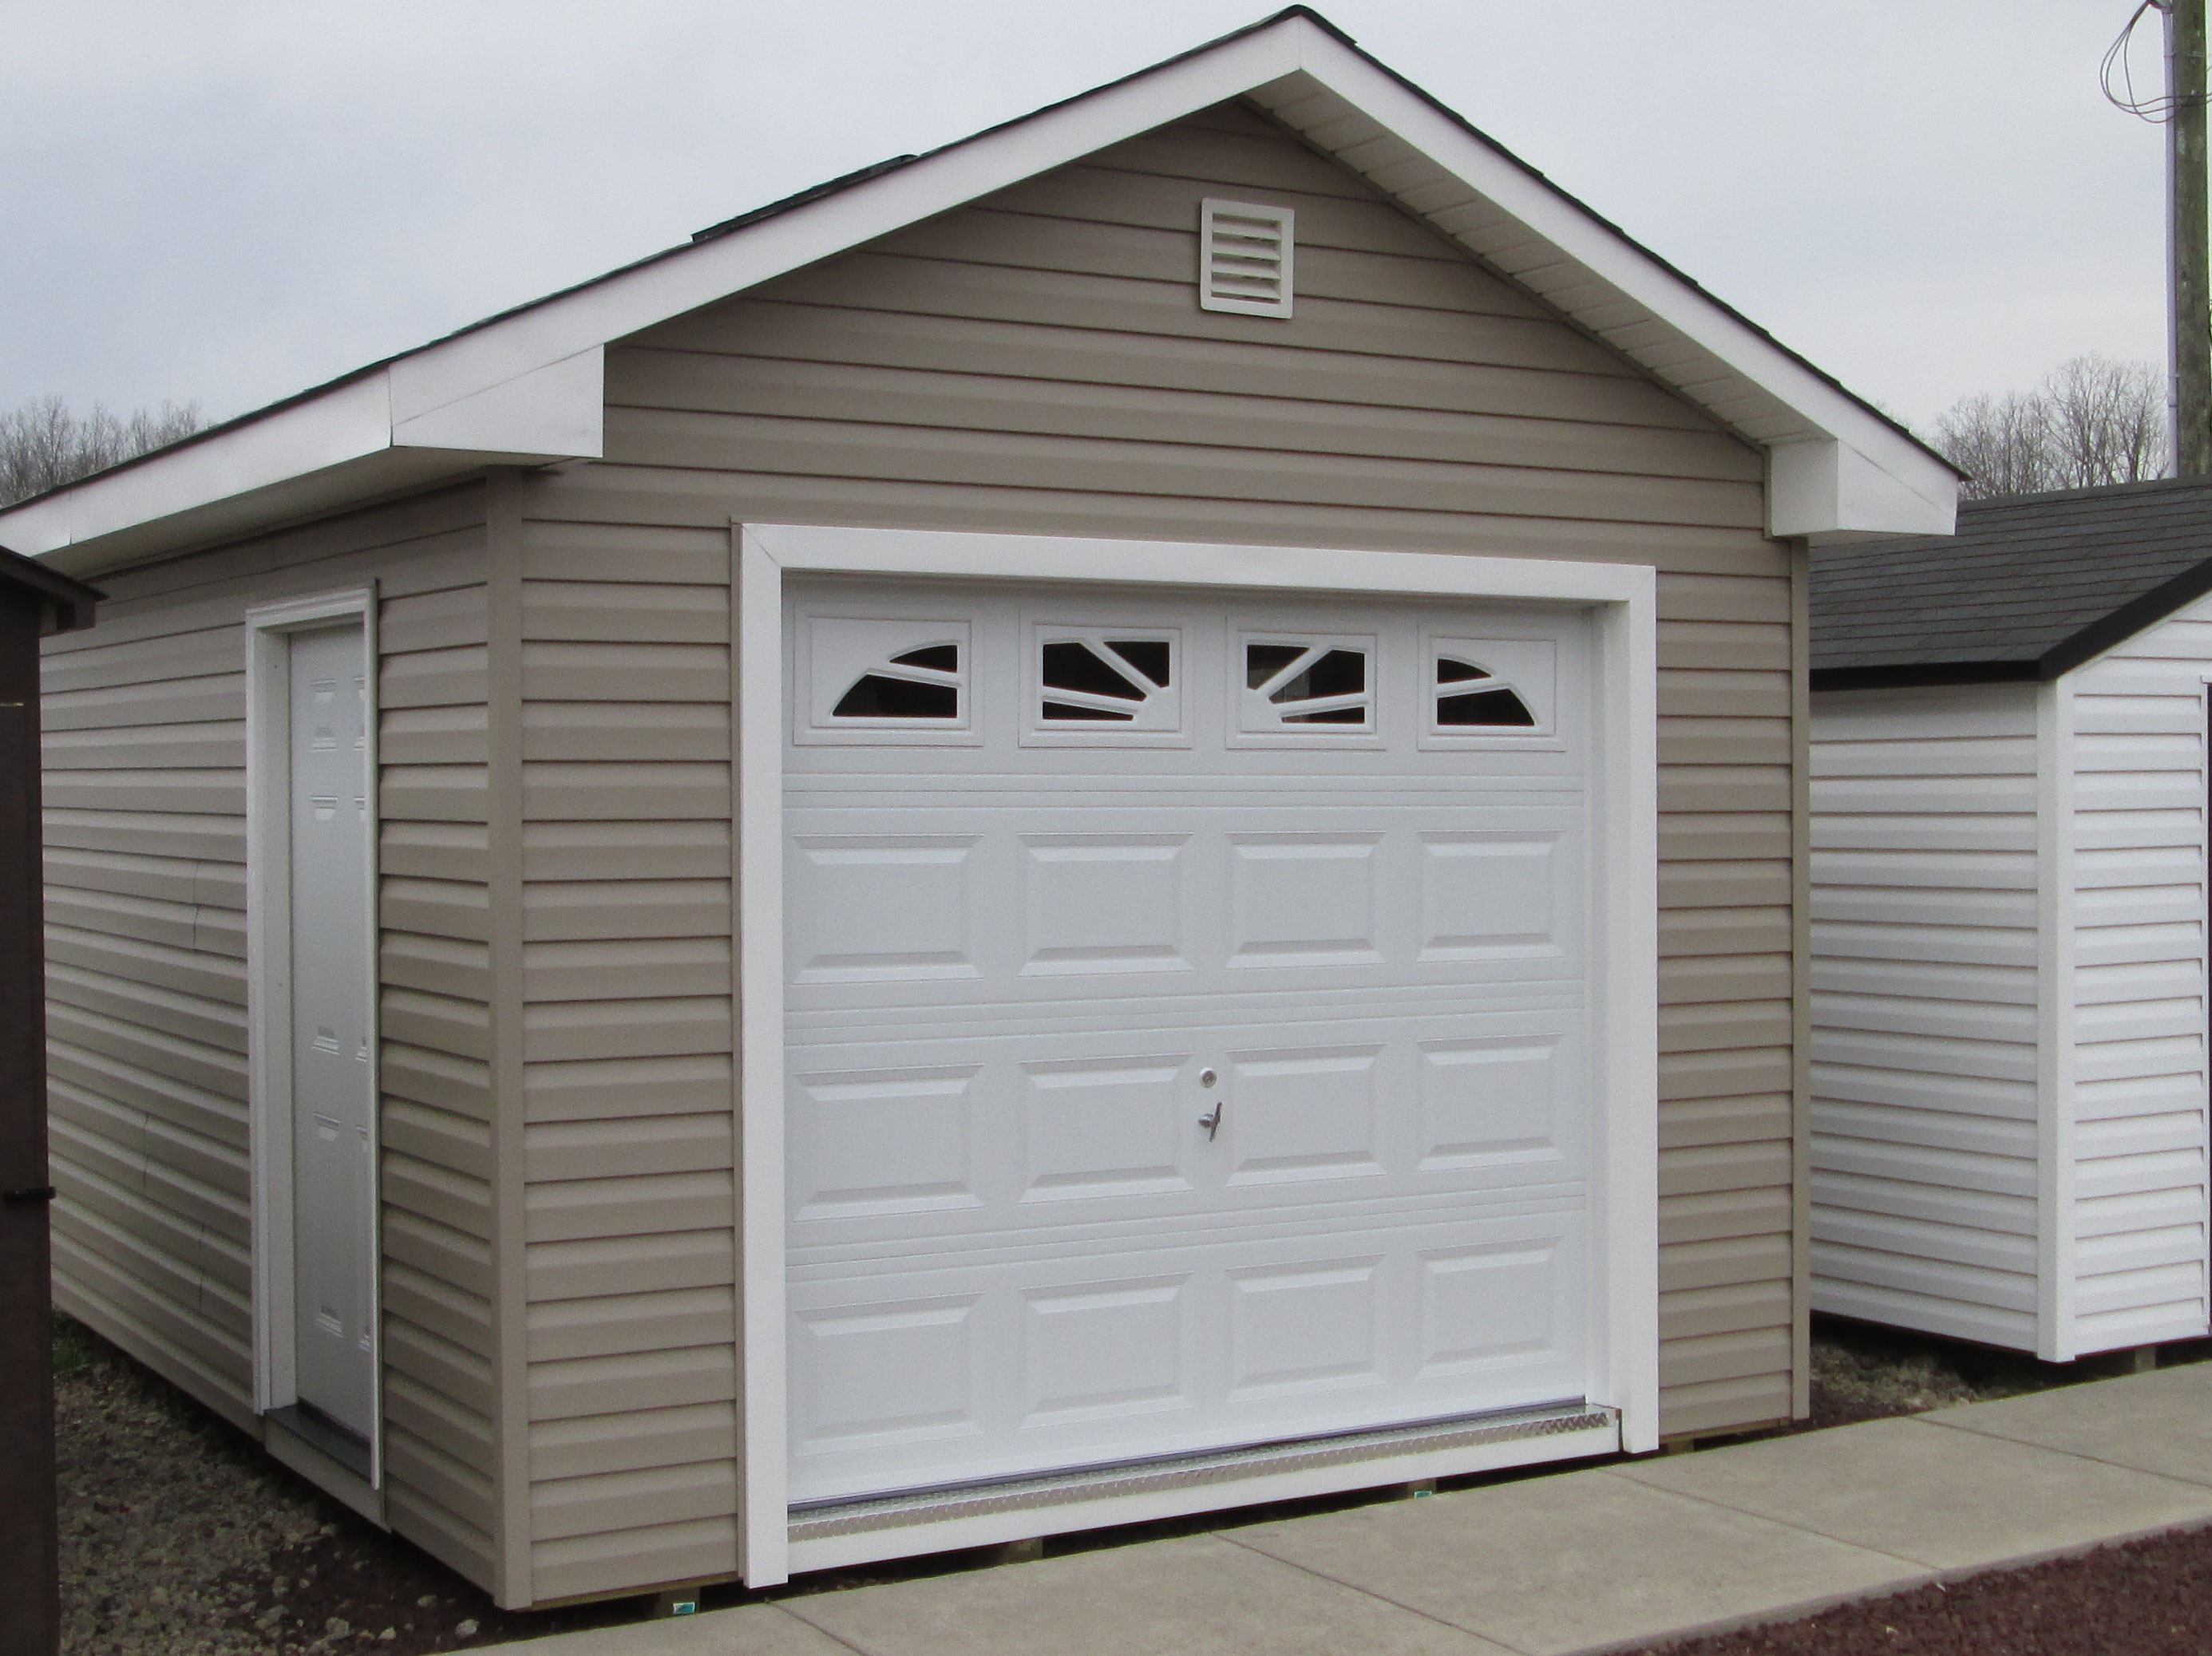 Garages american sheds for Shed with garage door